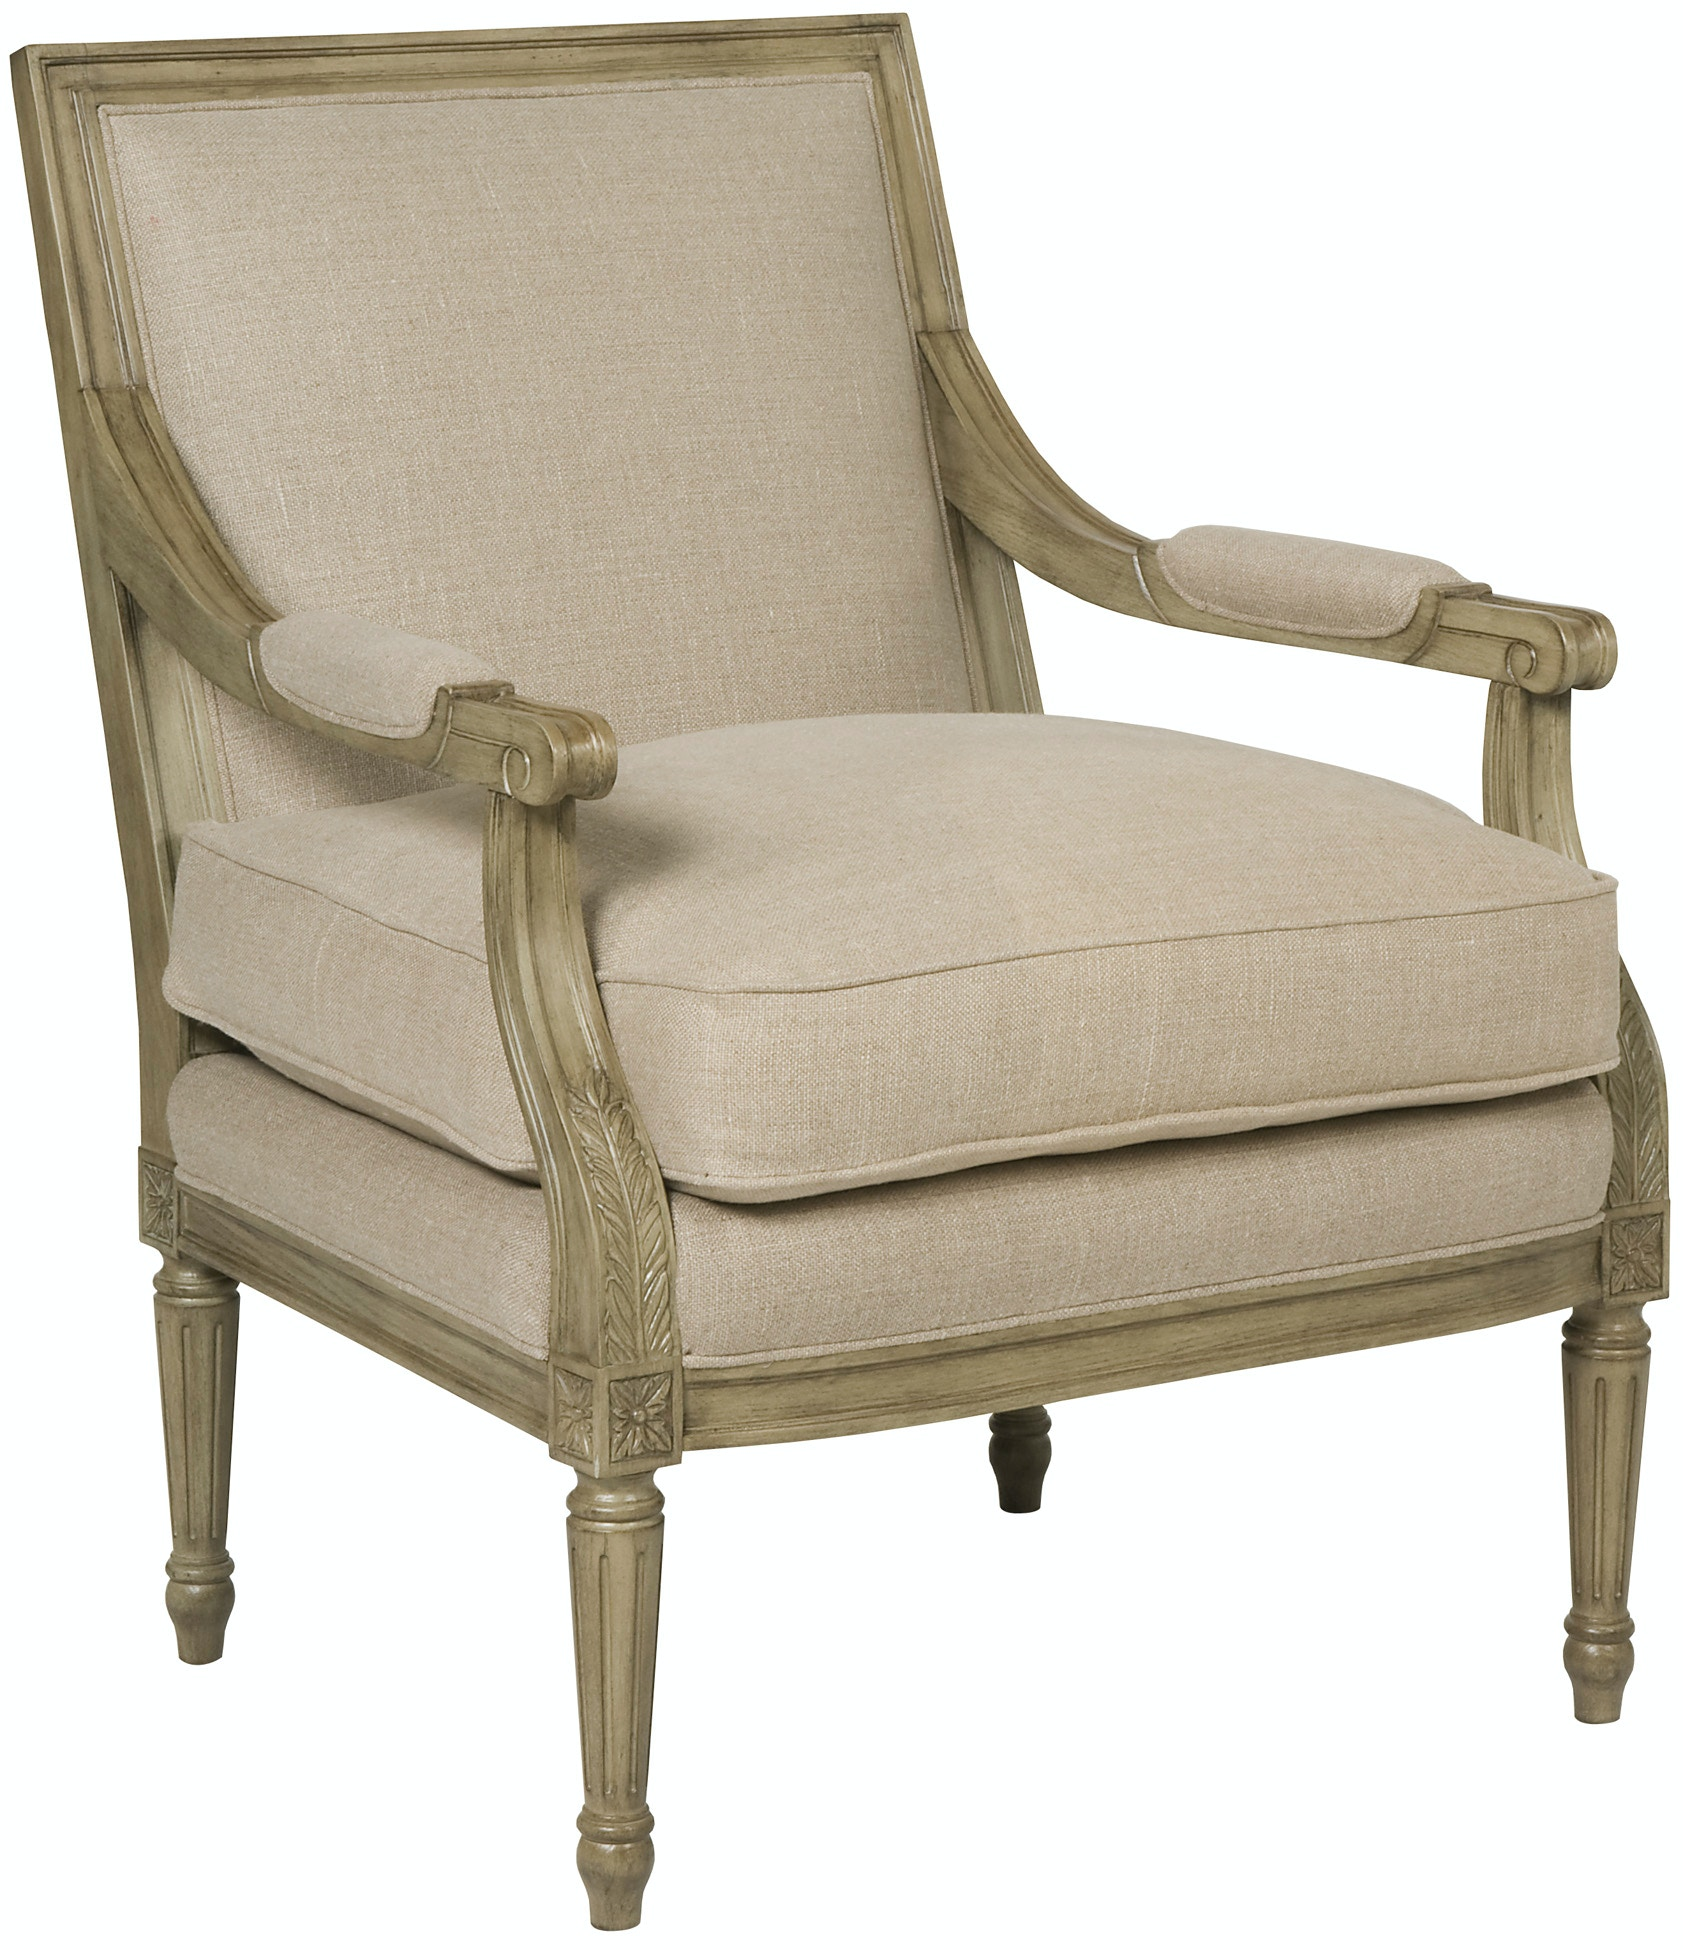 Vanguard Furniture Lillian Chair V1292 CH